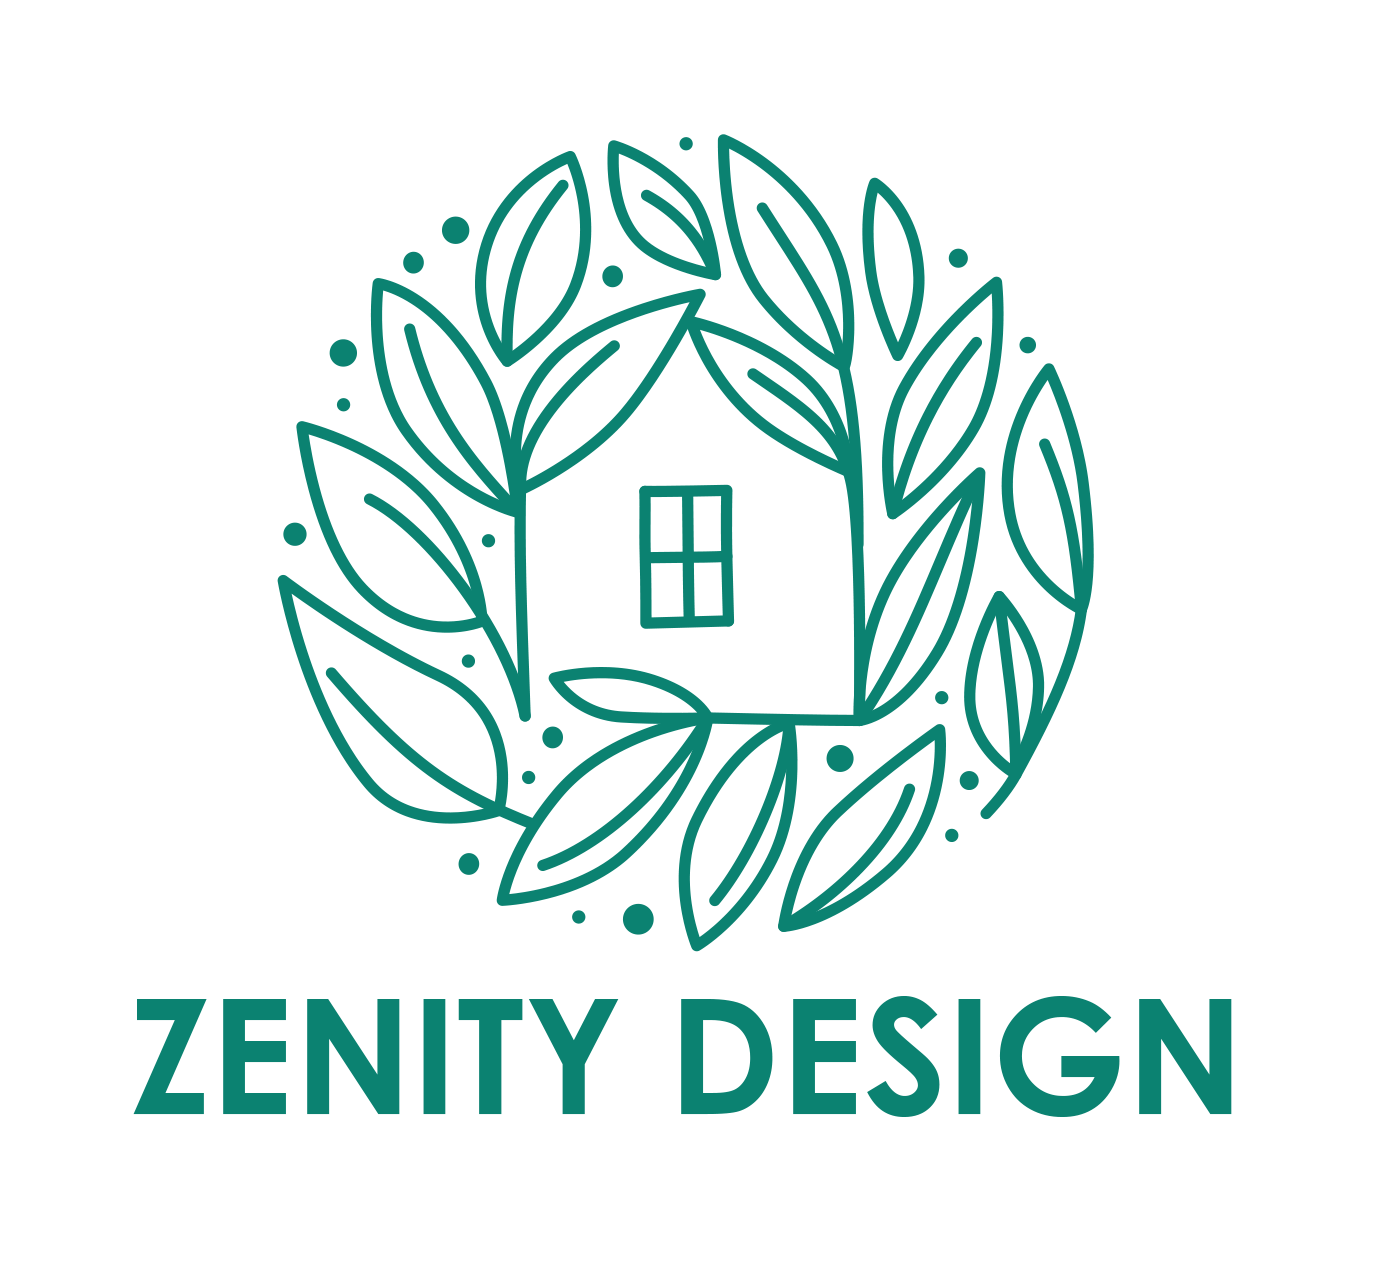 Zenity Design Renovation